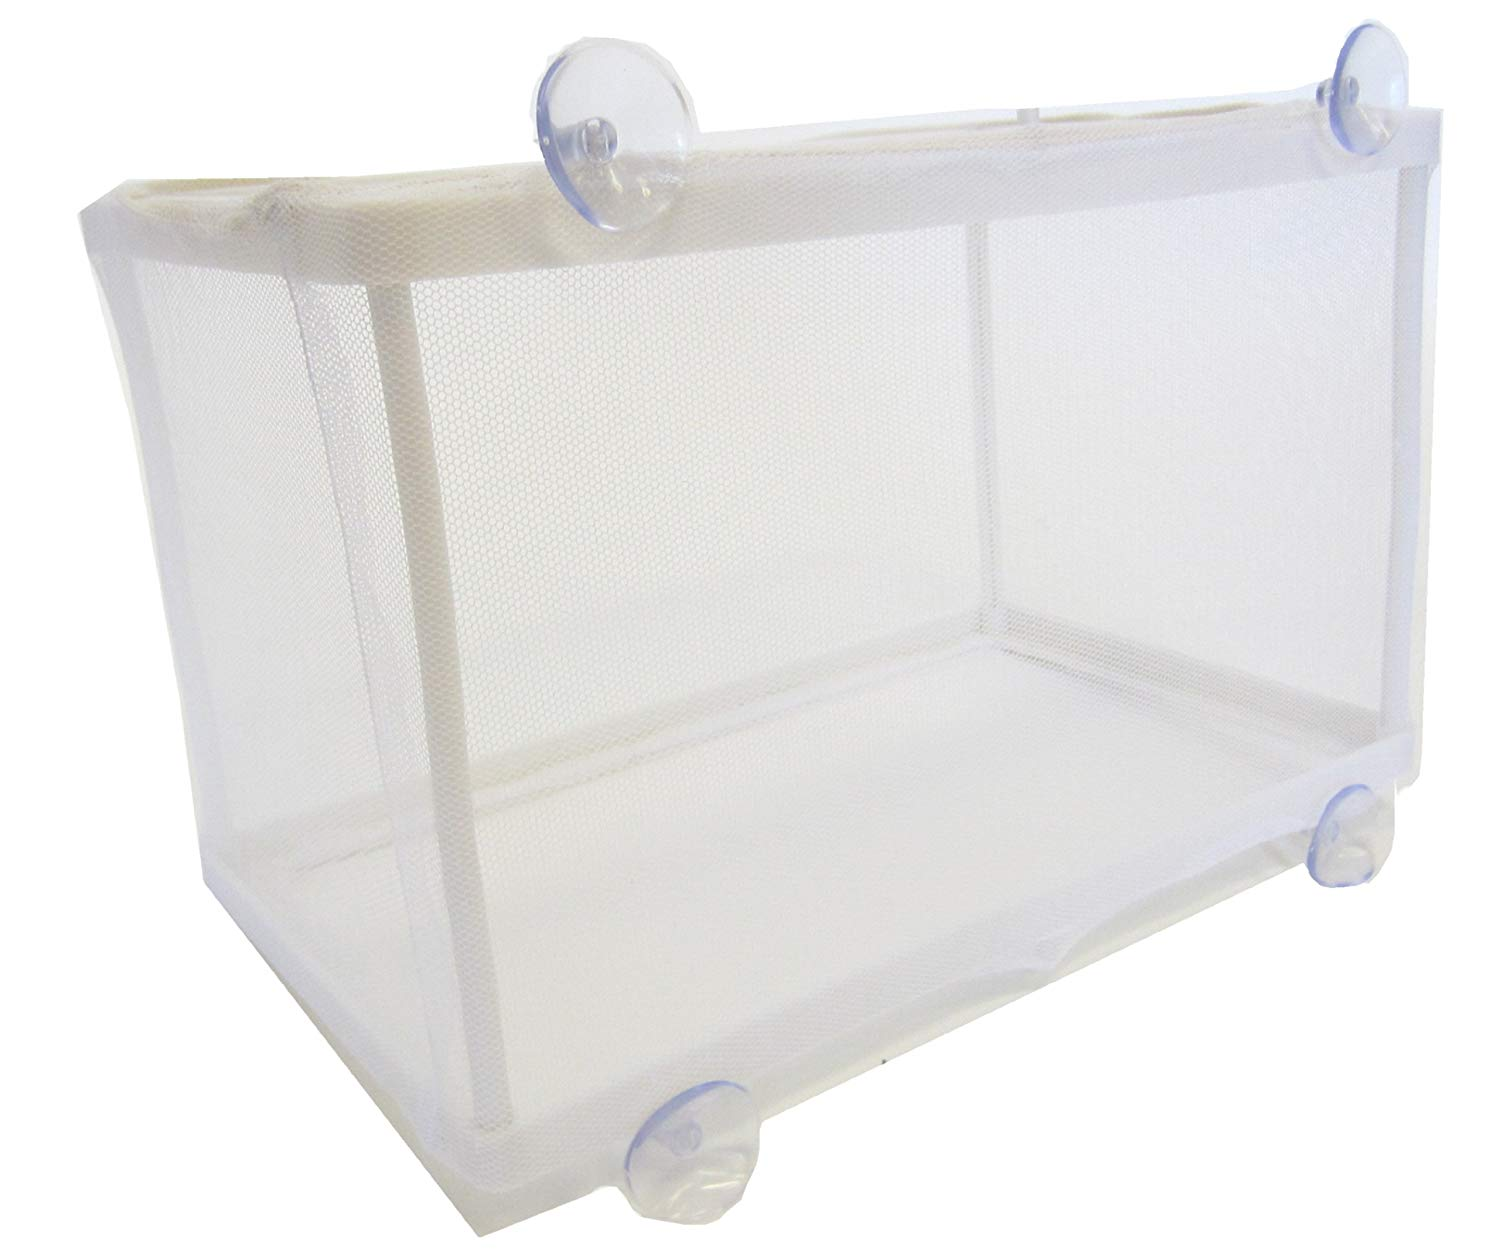 YML Aquarium Net Breeder, Medium from YML Group